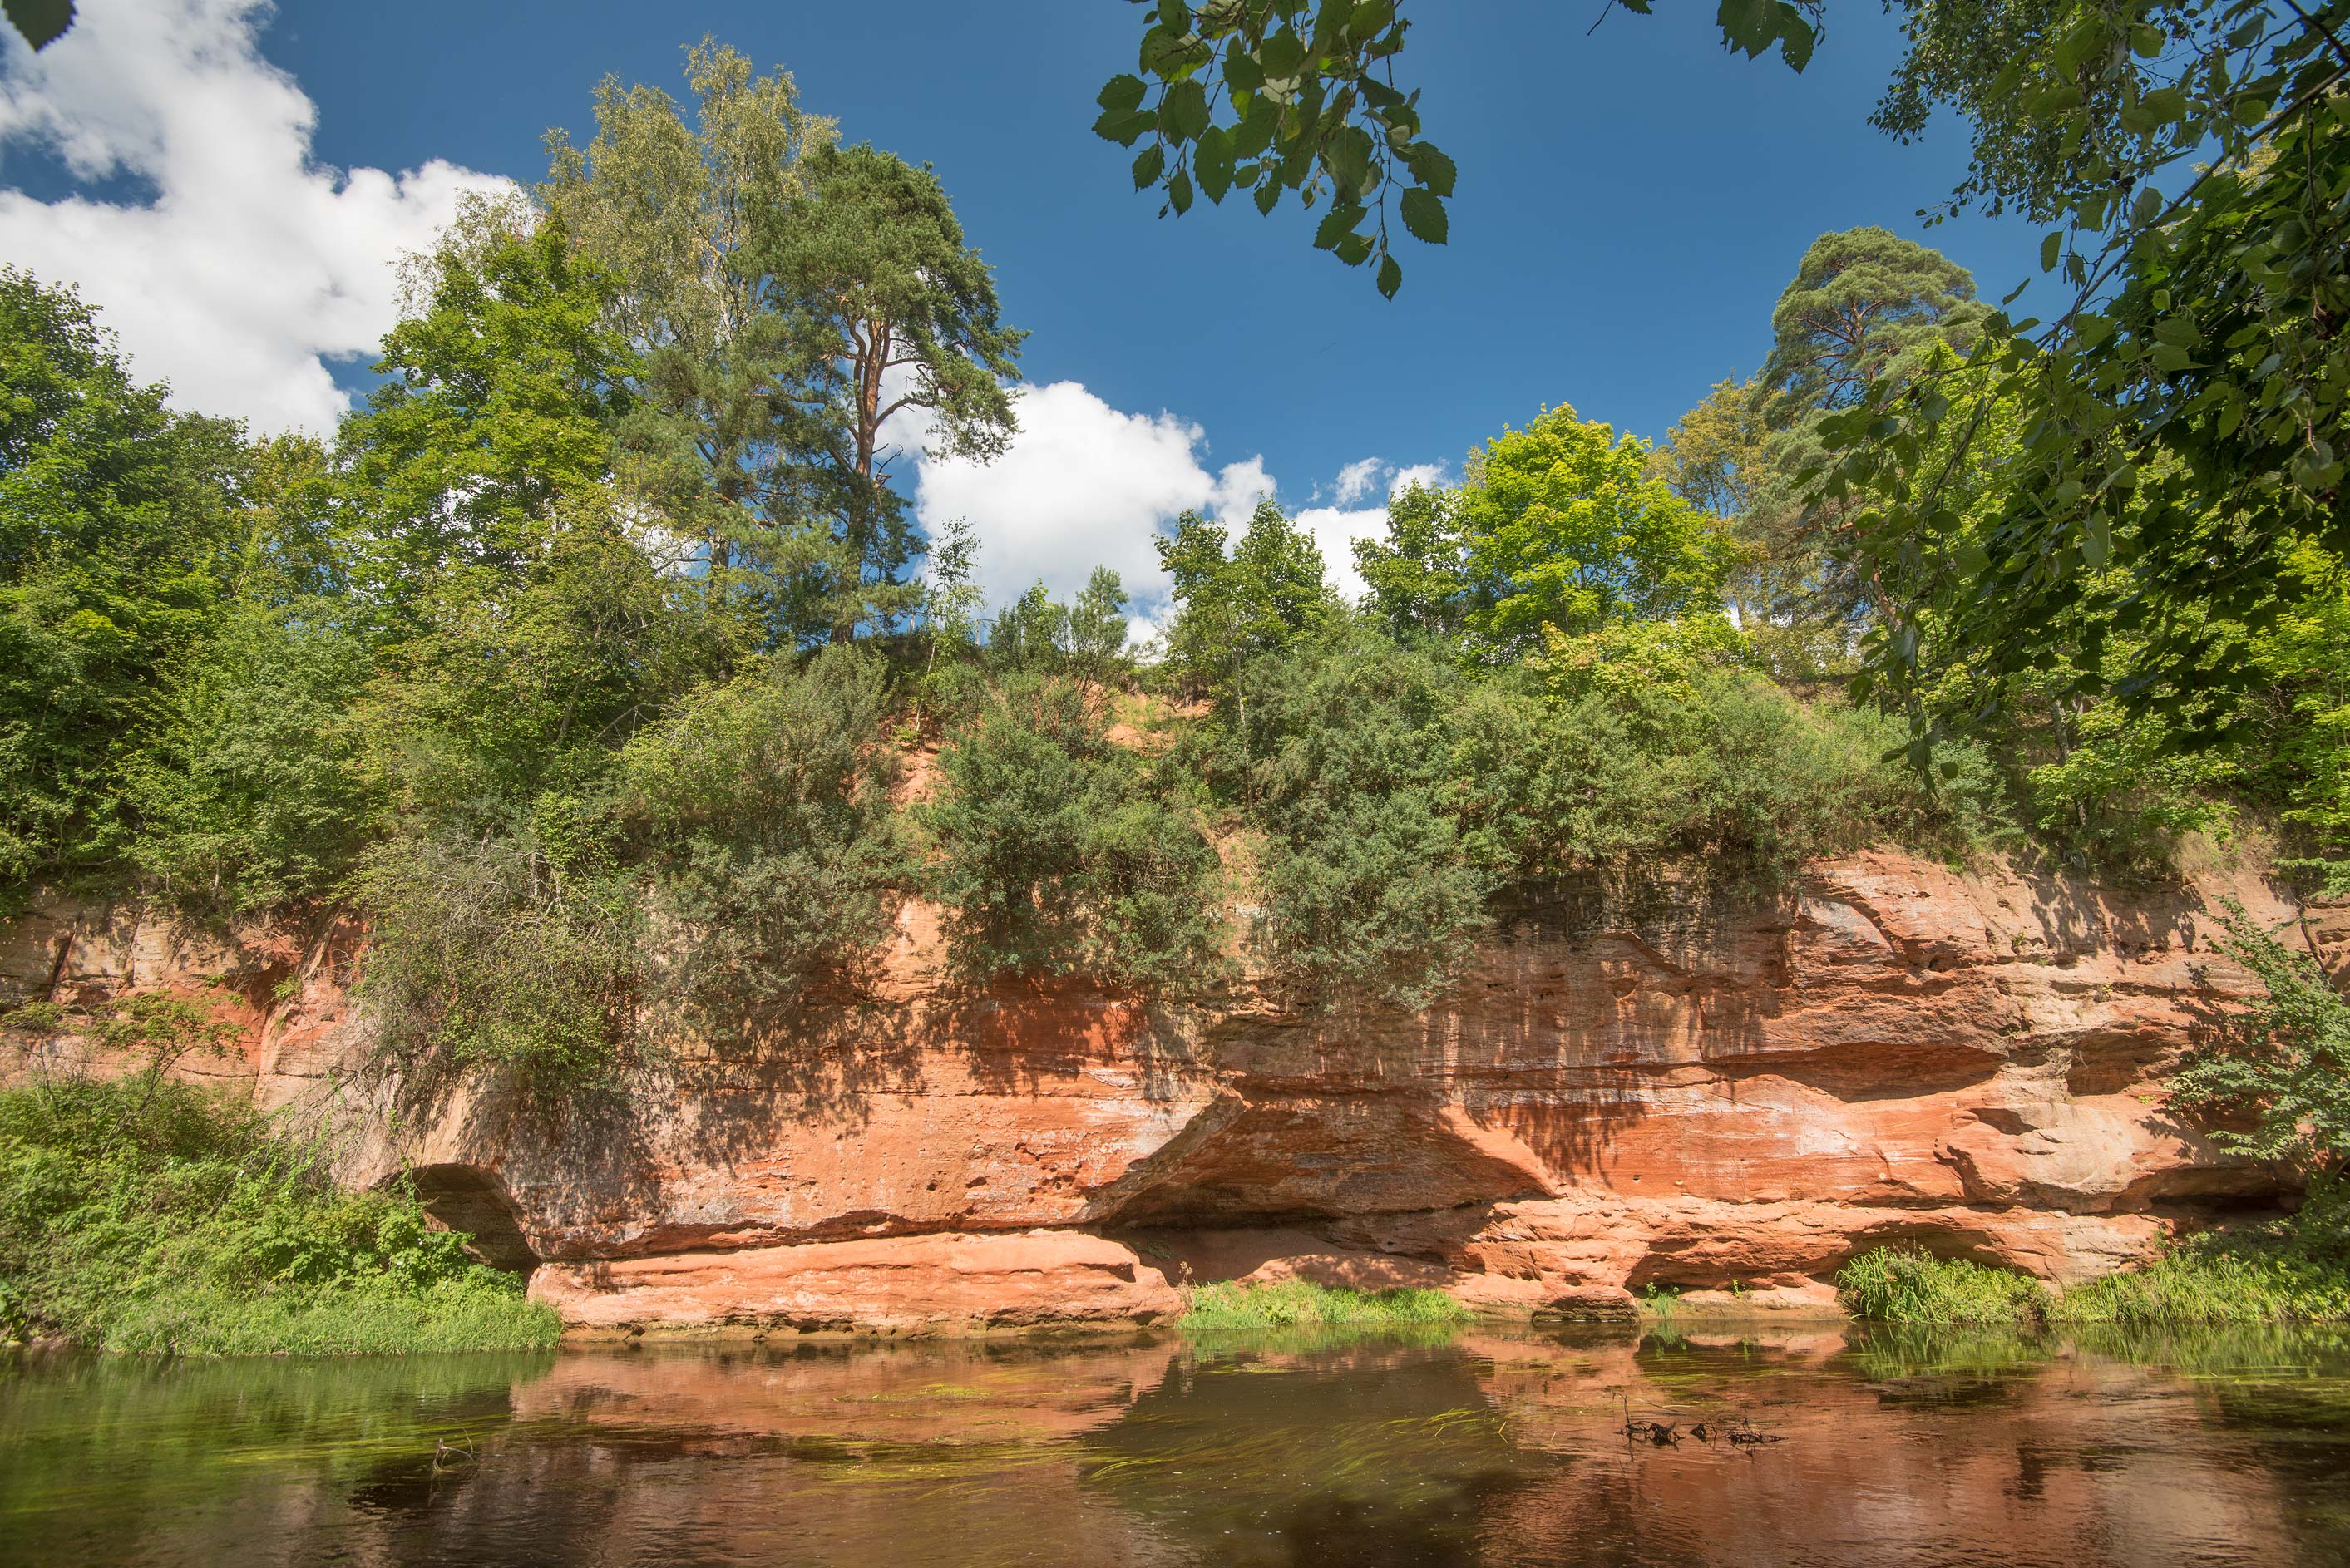 Red sandstone near Oredezh River in Siverskaya, 45 miles south from St.Petersburg. Russia